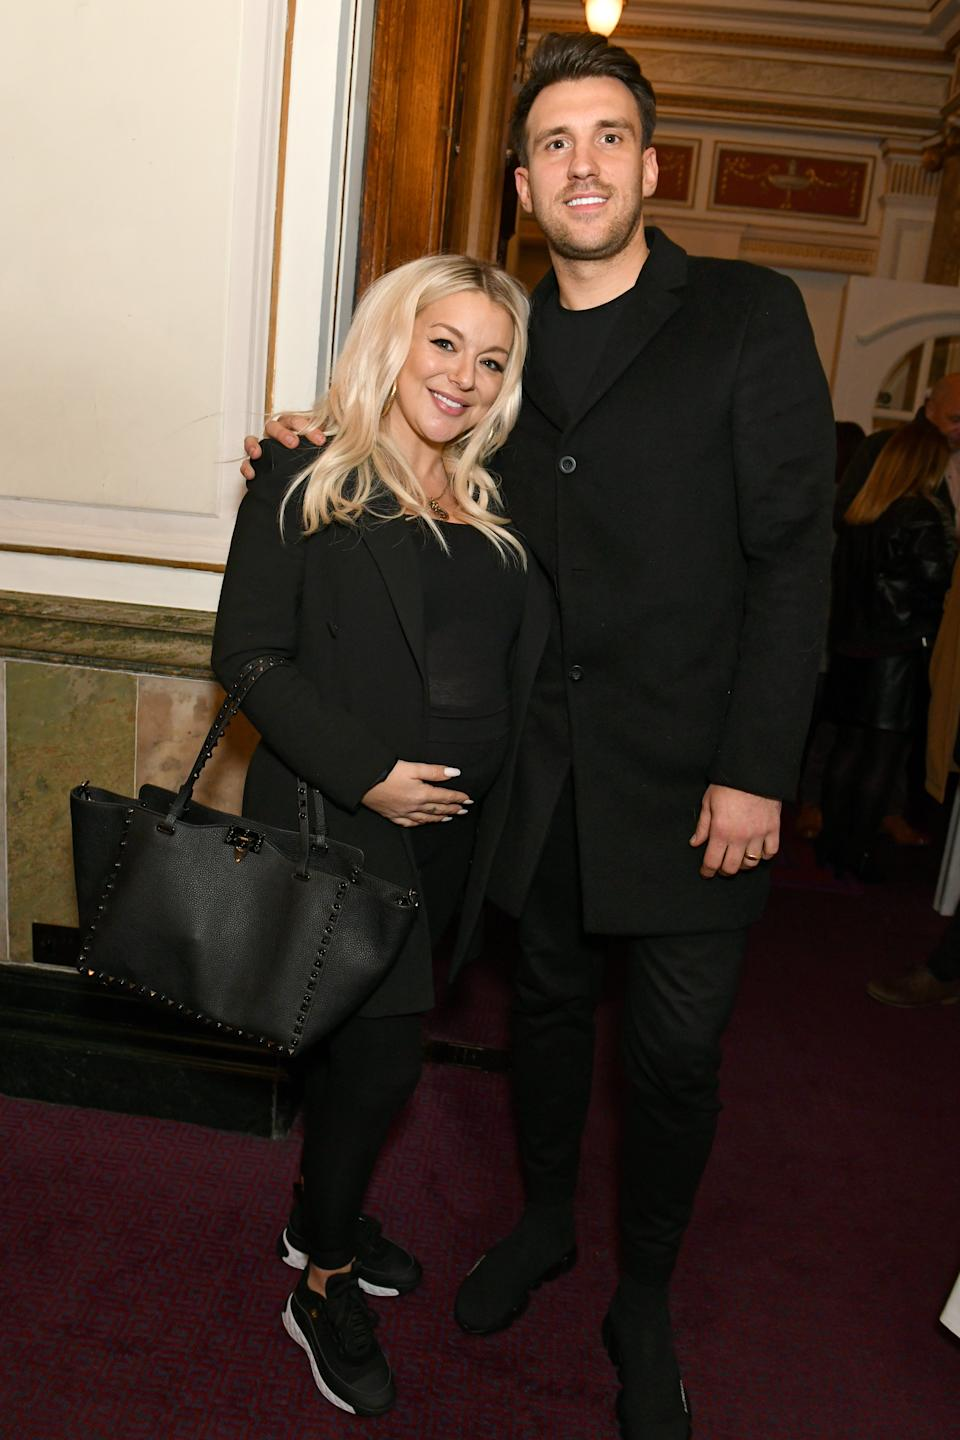 """Sheridan Smith and Jamie Horn attend the Gala Charity Concert of """"The Pirate Queen"""" in aid of Leukaemia UK at The London Coliseum on February 23, 2020 in London, England.  (Photo by David M. Benett/Dave Benett/WireImage)"""